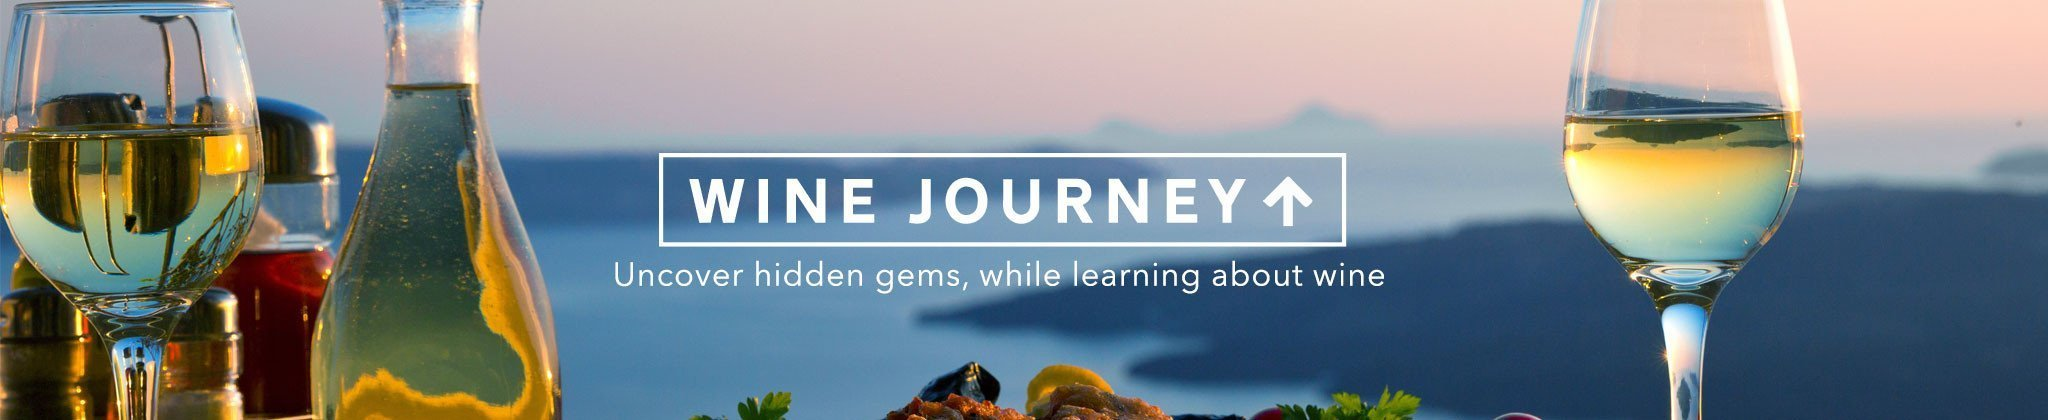 wine-journey-image